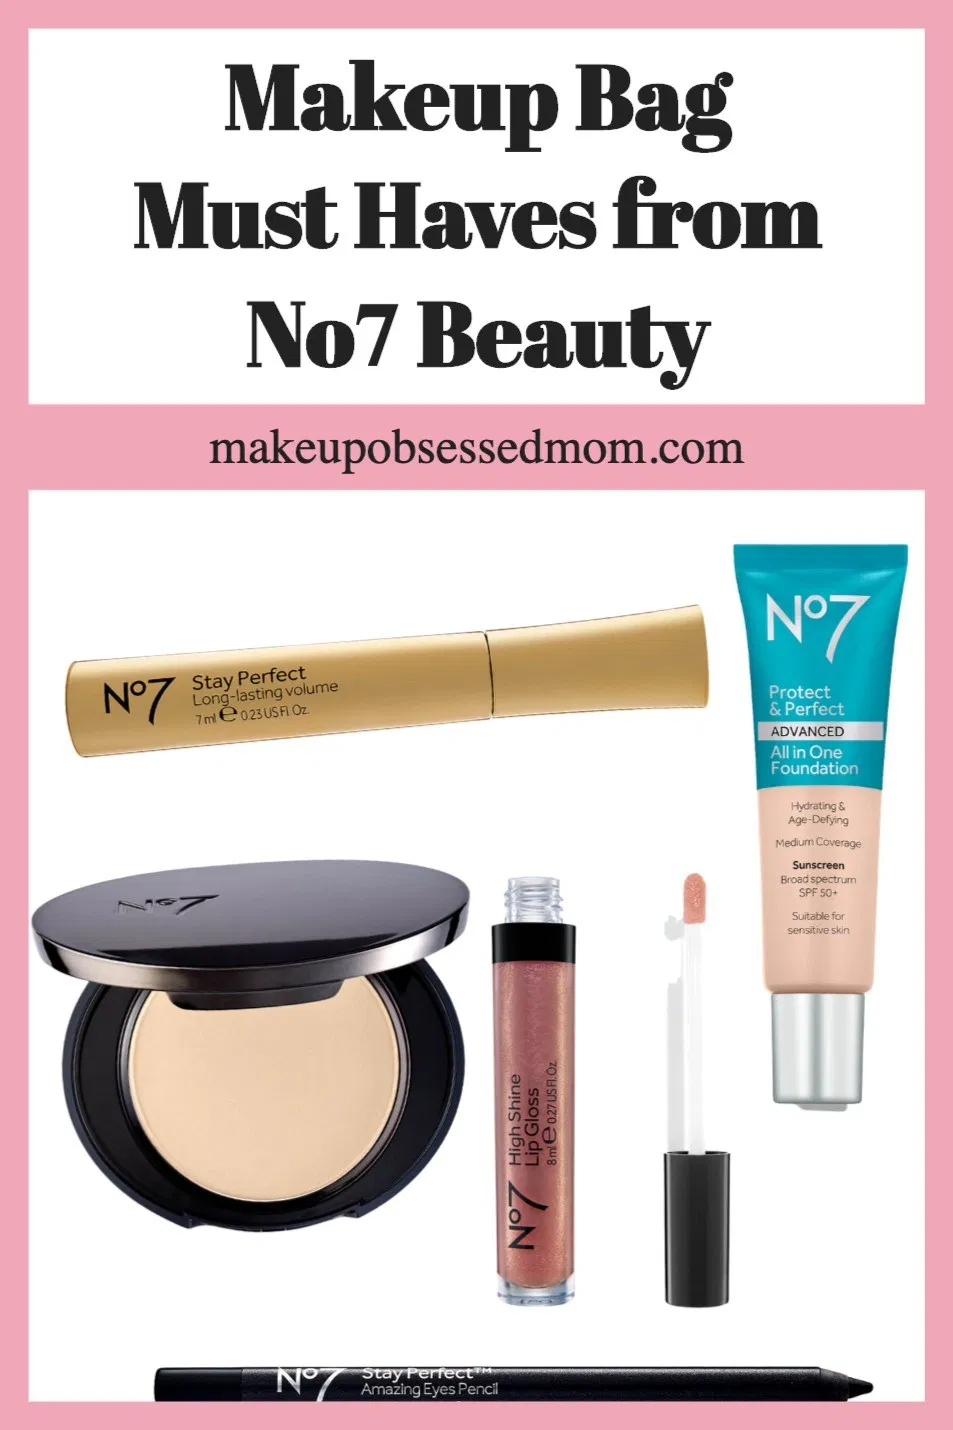 Makeup Bag Must Haves From No7 Beauty In 2020 Makeup Makeup Bag No7